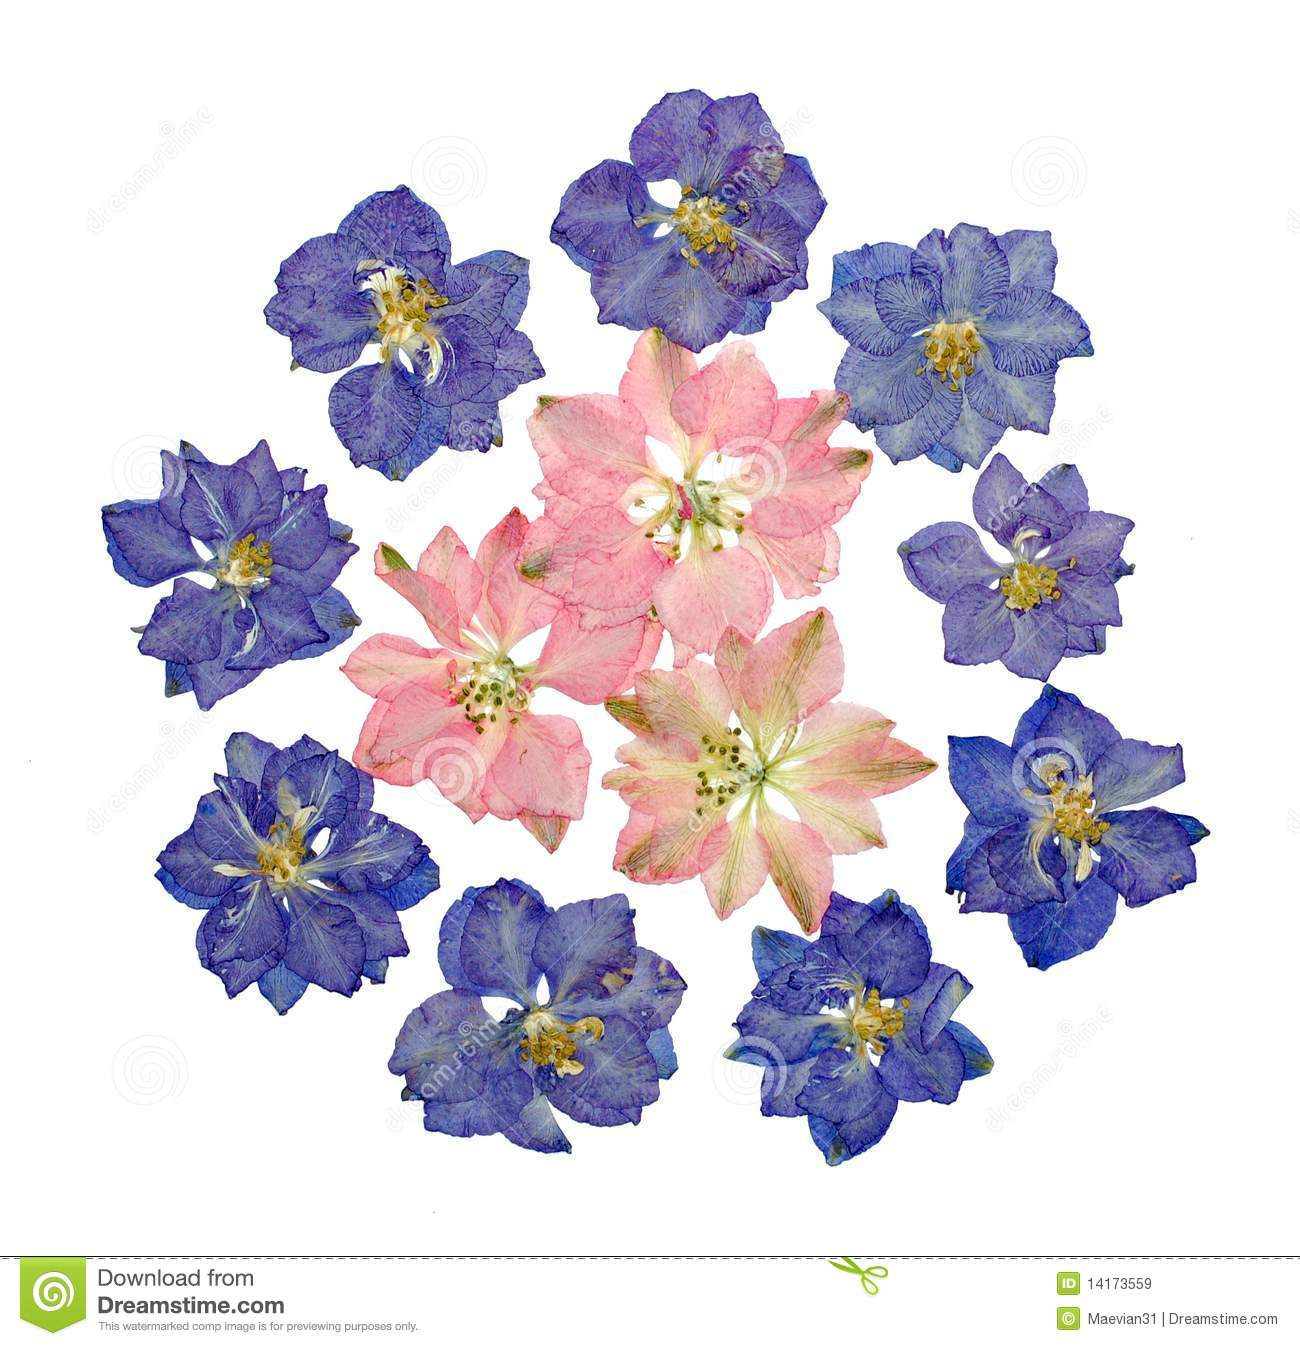 Clipart larkspurflowers vector royalty free library Collection of 14 free Flower clipart larkspur bill clipart dollar ... vector royalty free library